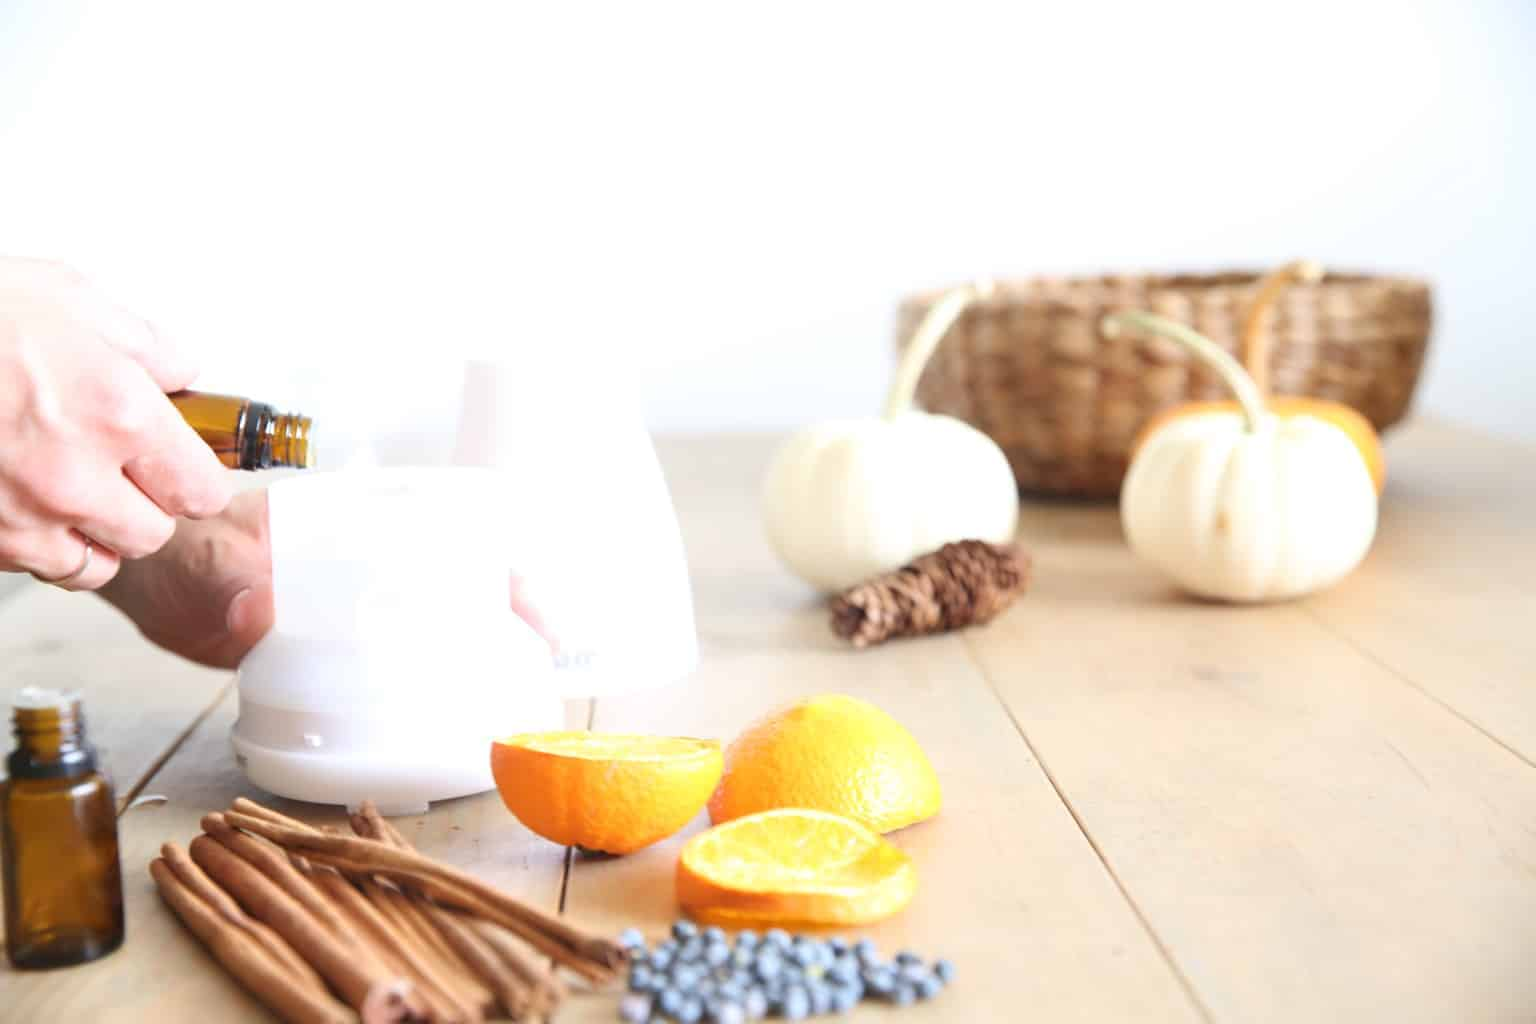 Essential oils can be used to help protect against flu and cold symptoms. Using essential oils safely with kids.